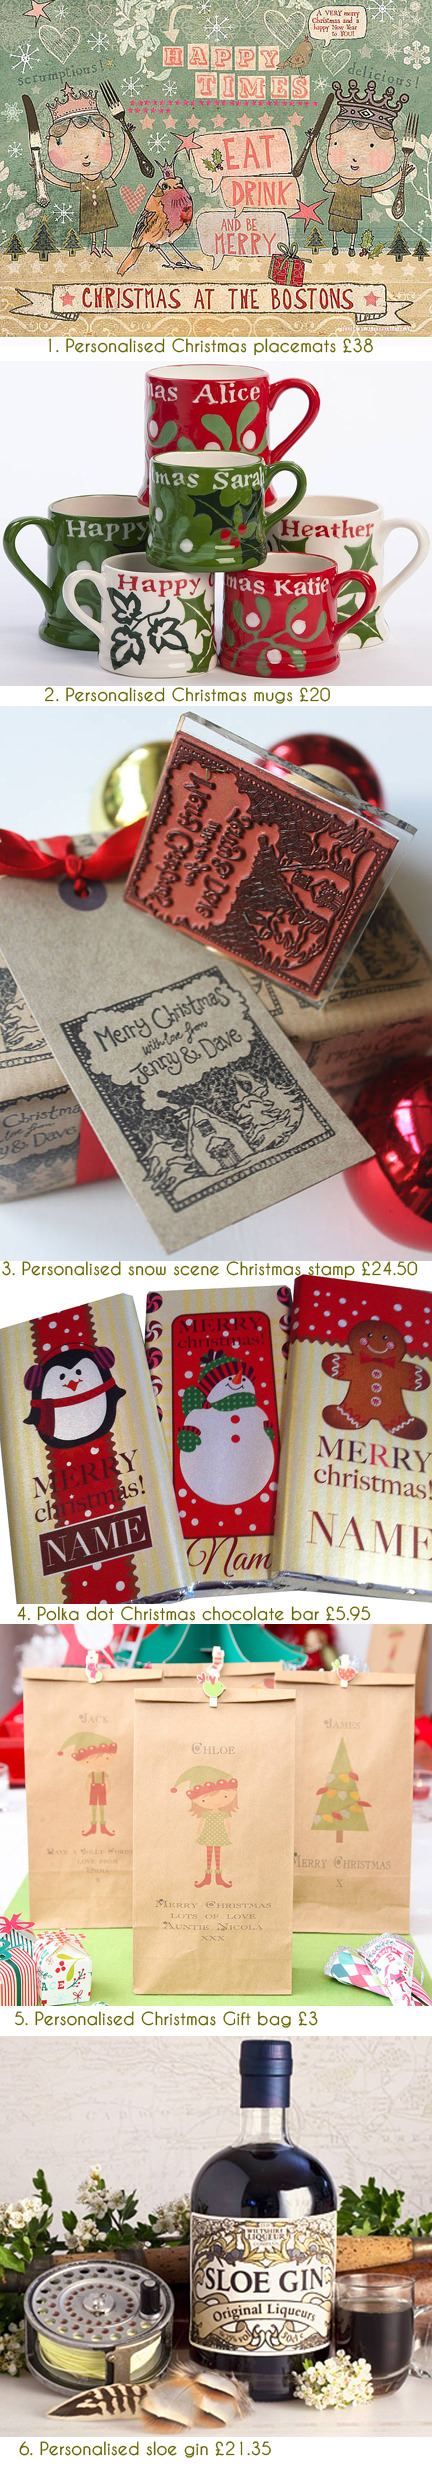 selection of festive, personalised Christmas items available on the notonthehighstreet.com website